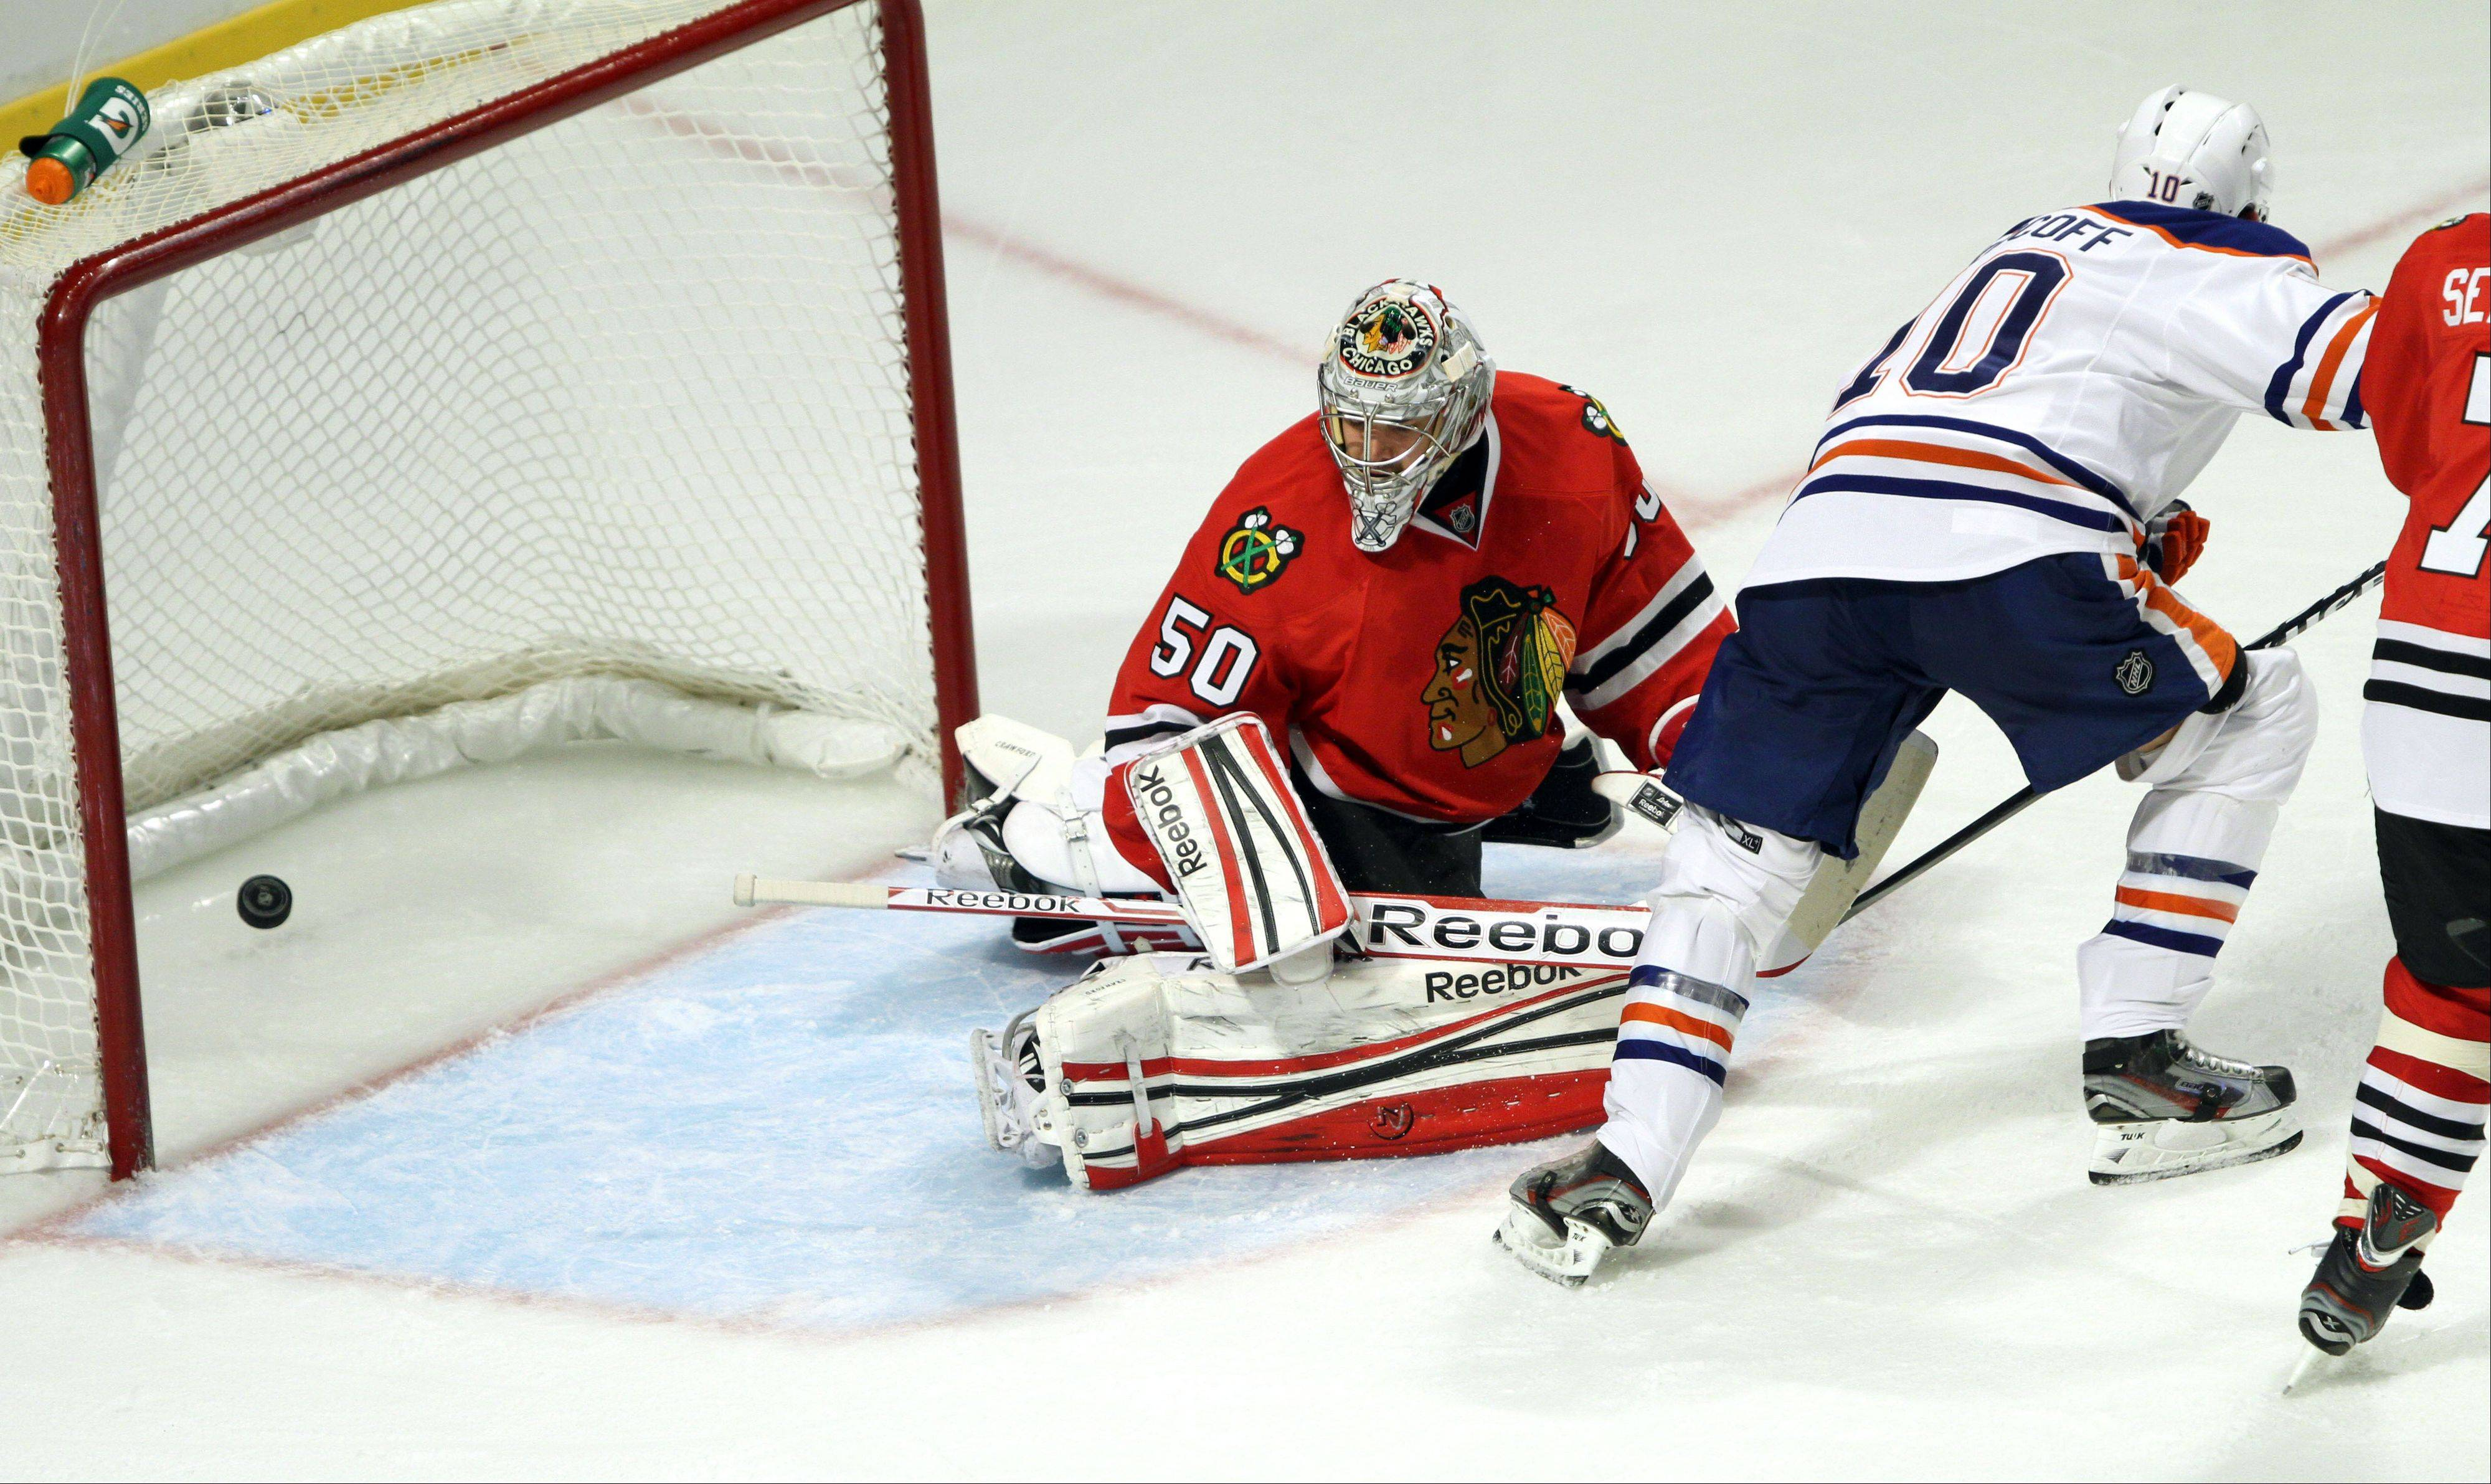 Edmonton Oilers center Shawn Horcoff scores on Chicago Blackhawks goalie Corey Crawford in the second period during their game Sunday night at the United Center in Chicago.